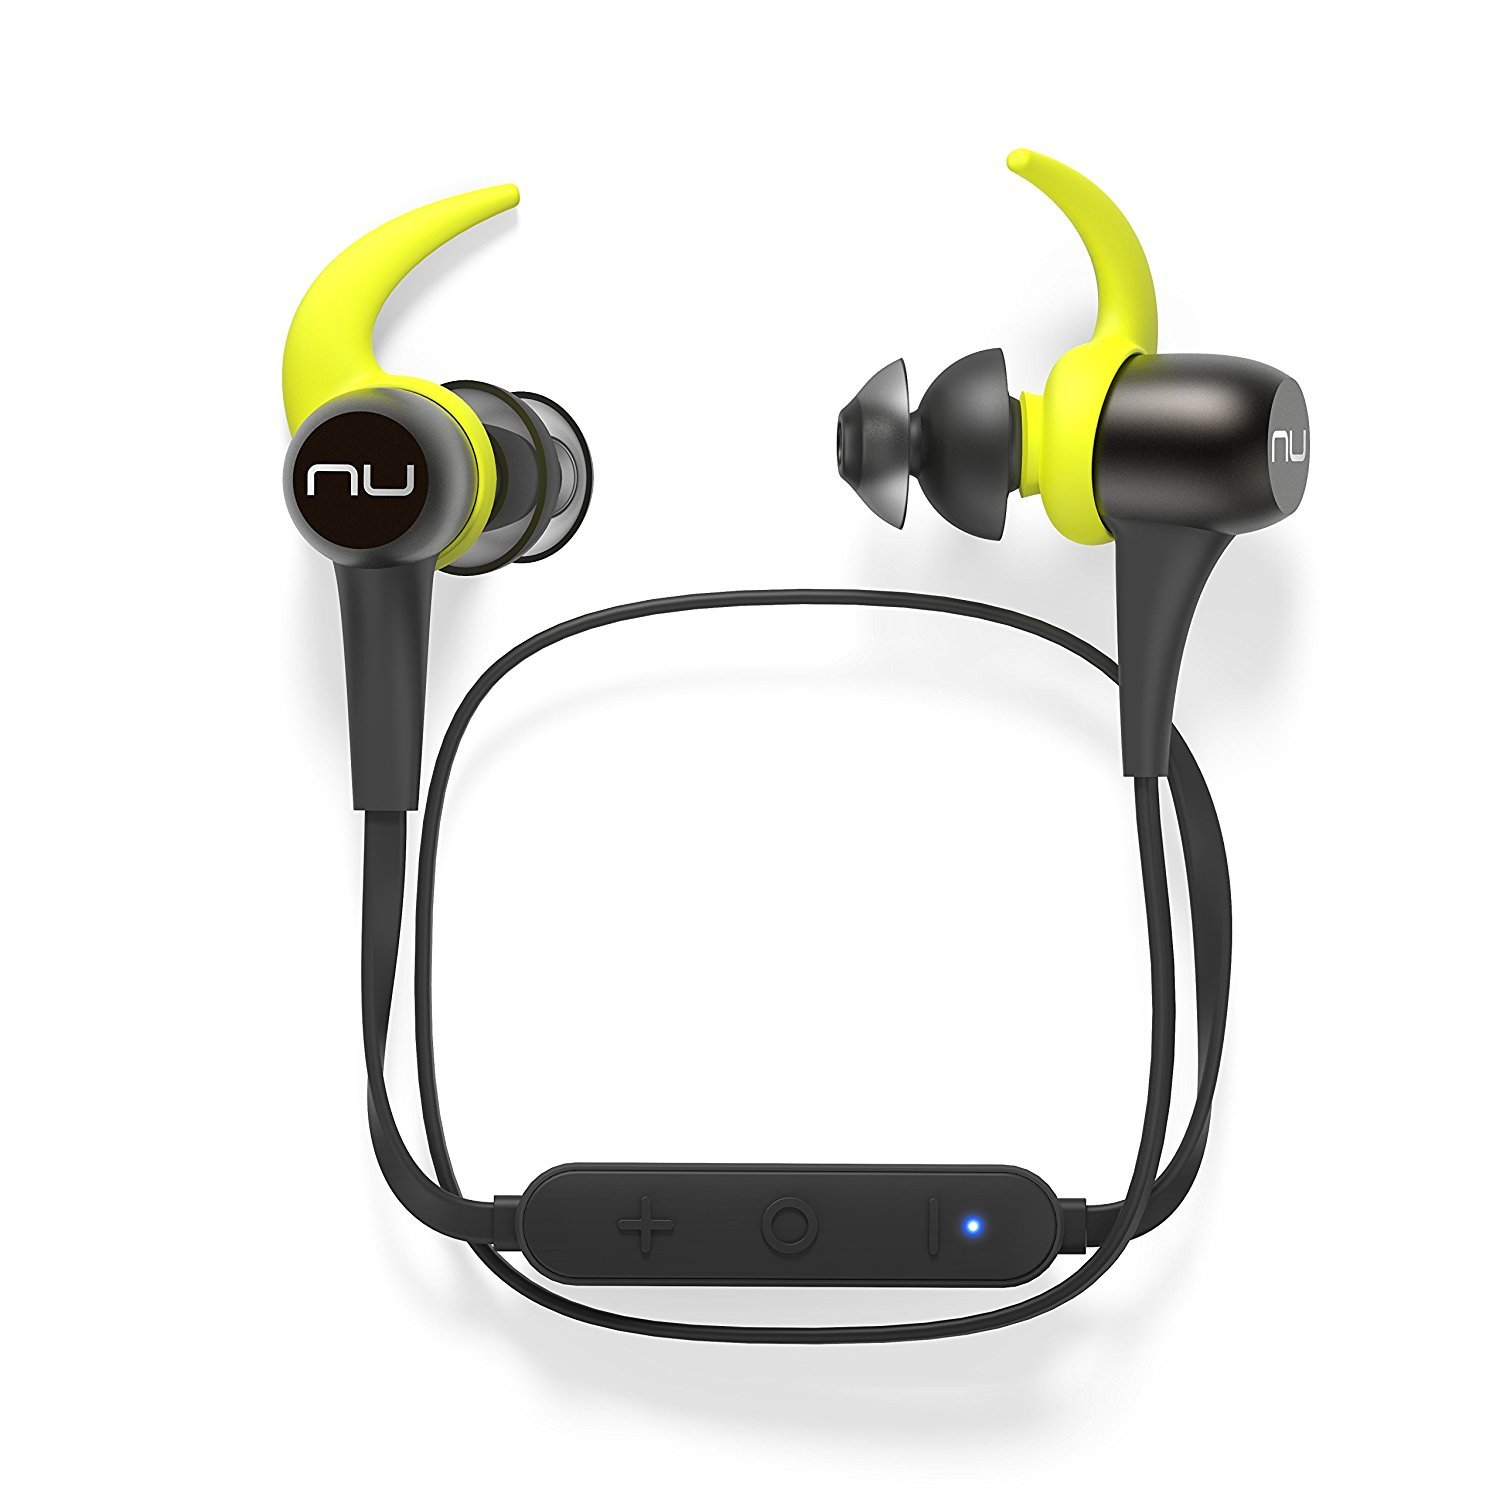 5 Best Value Wireless Earbuds of 2018 - Optoma Nuforce Be Sports3